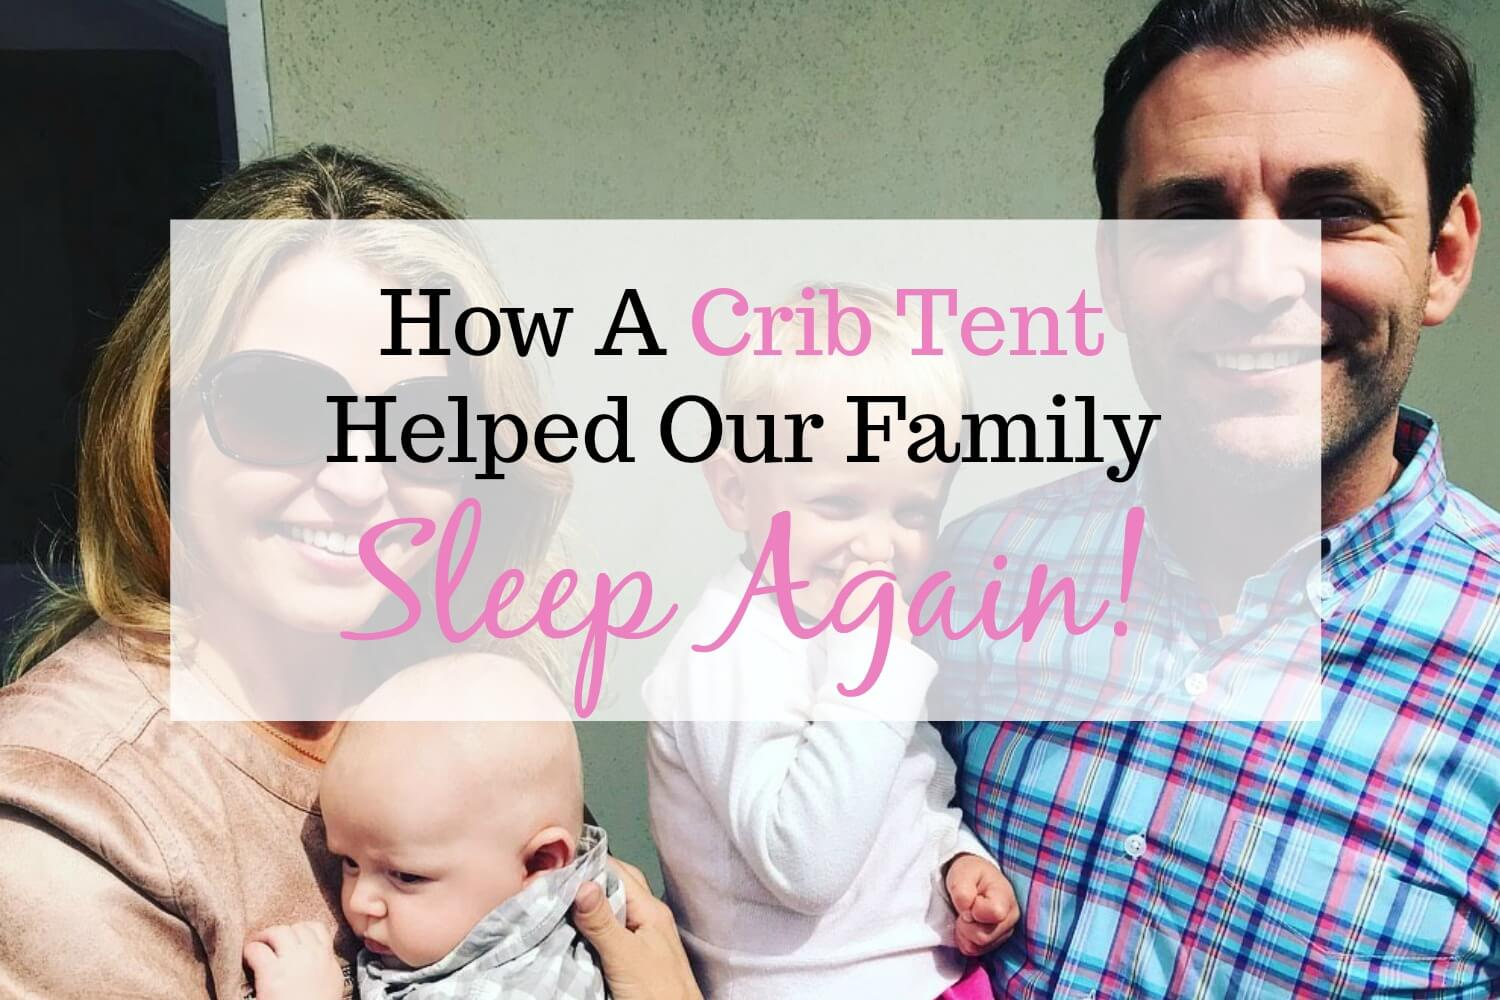 How A Crib Tent Helped Our Family Sleep Again